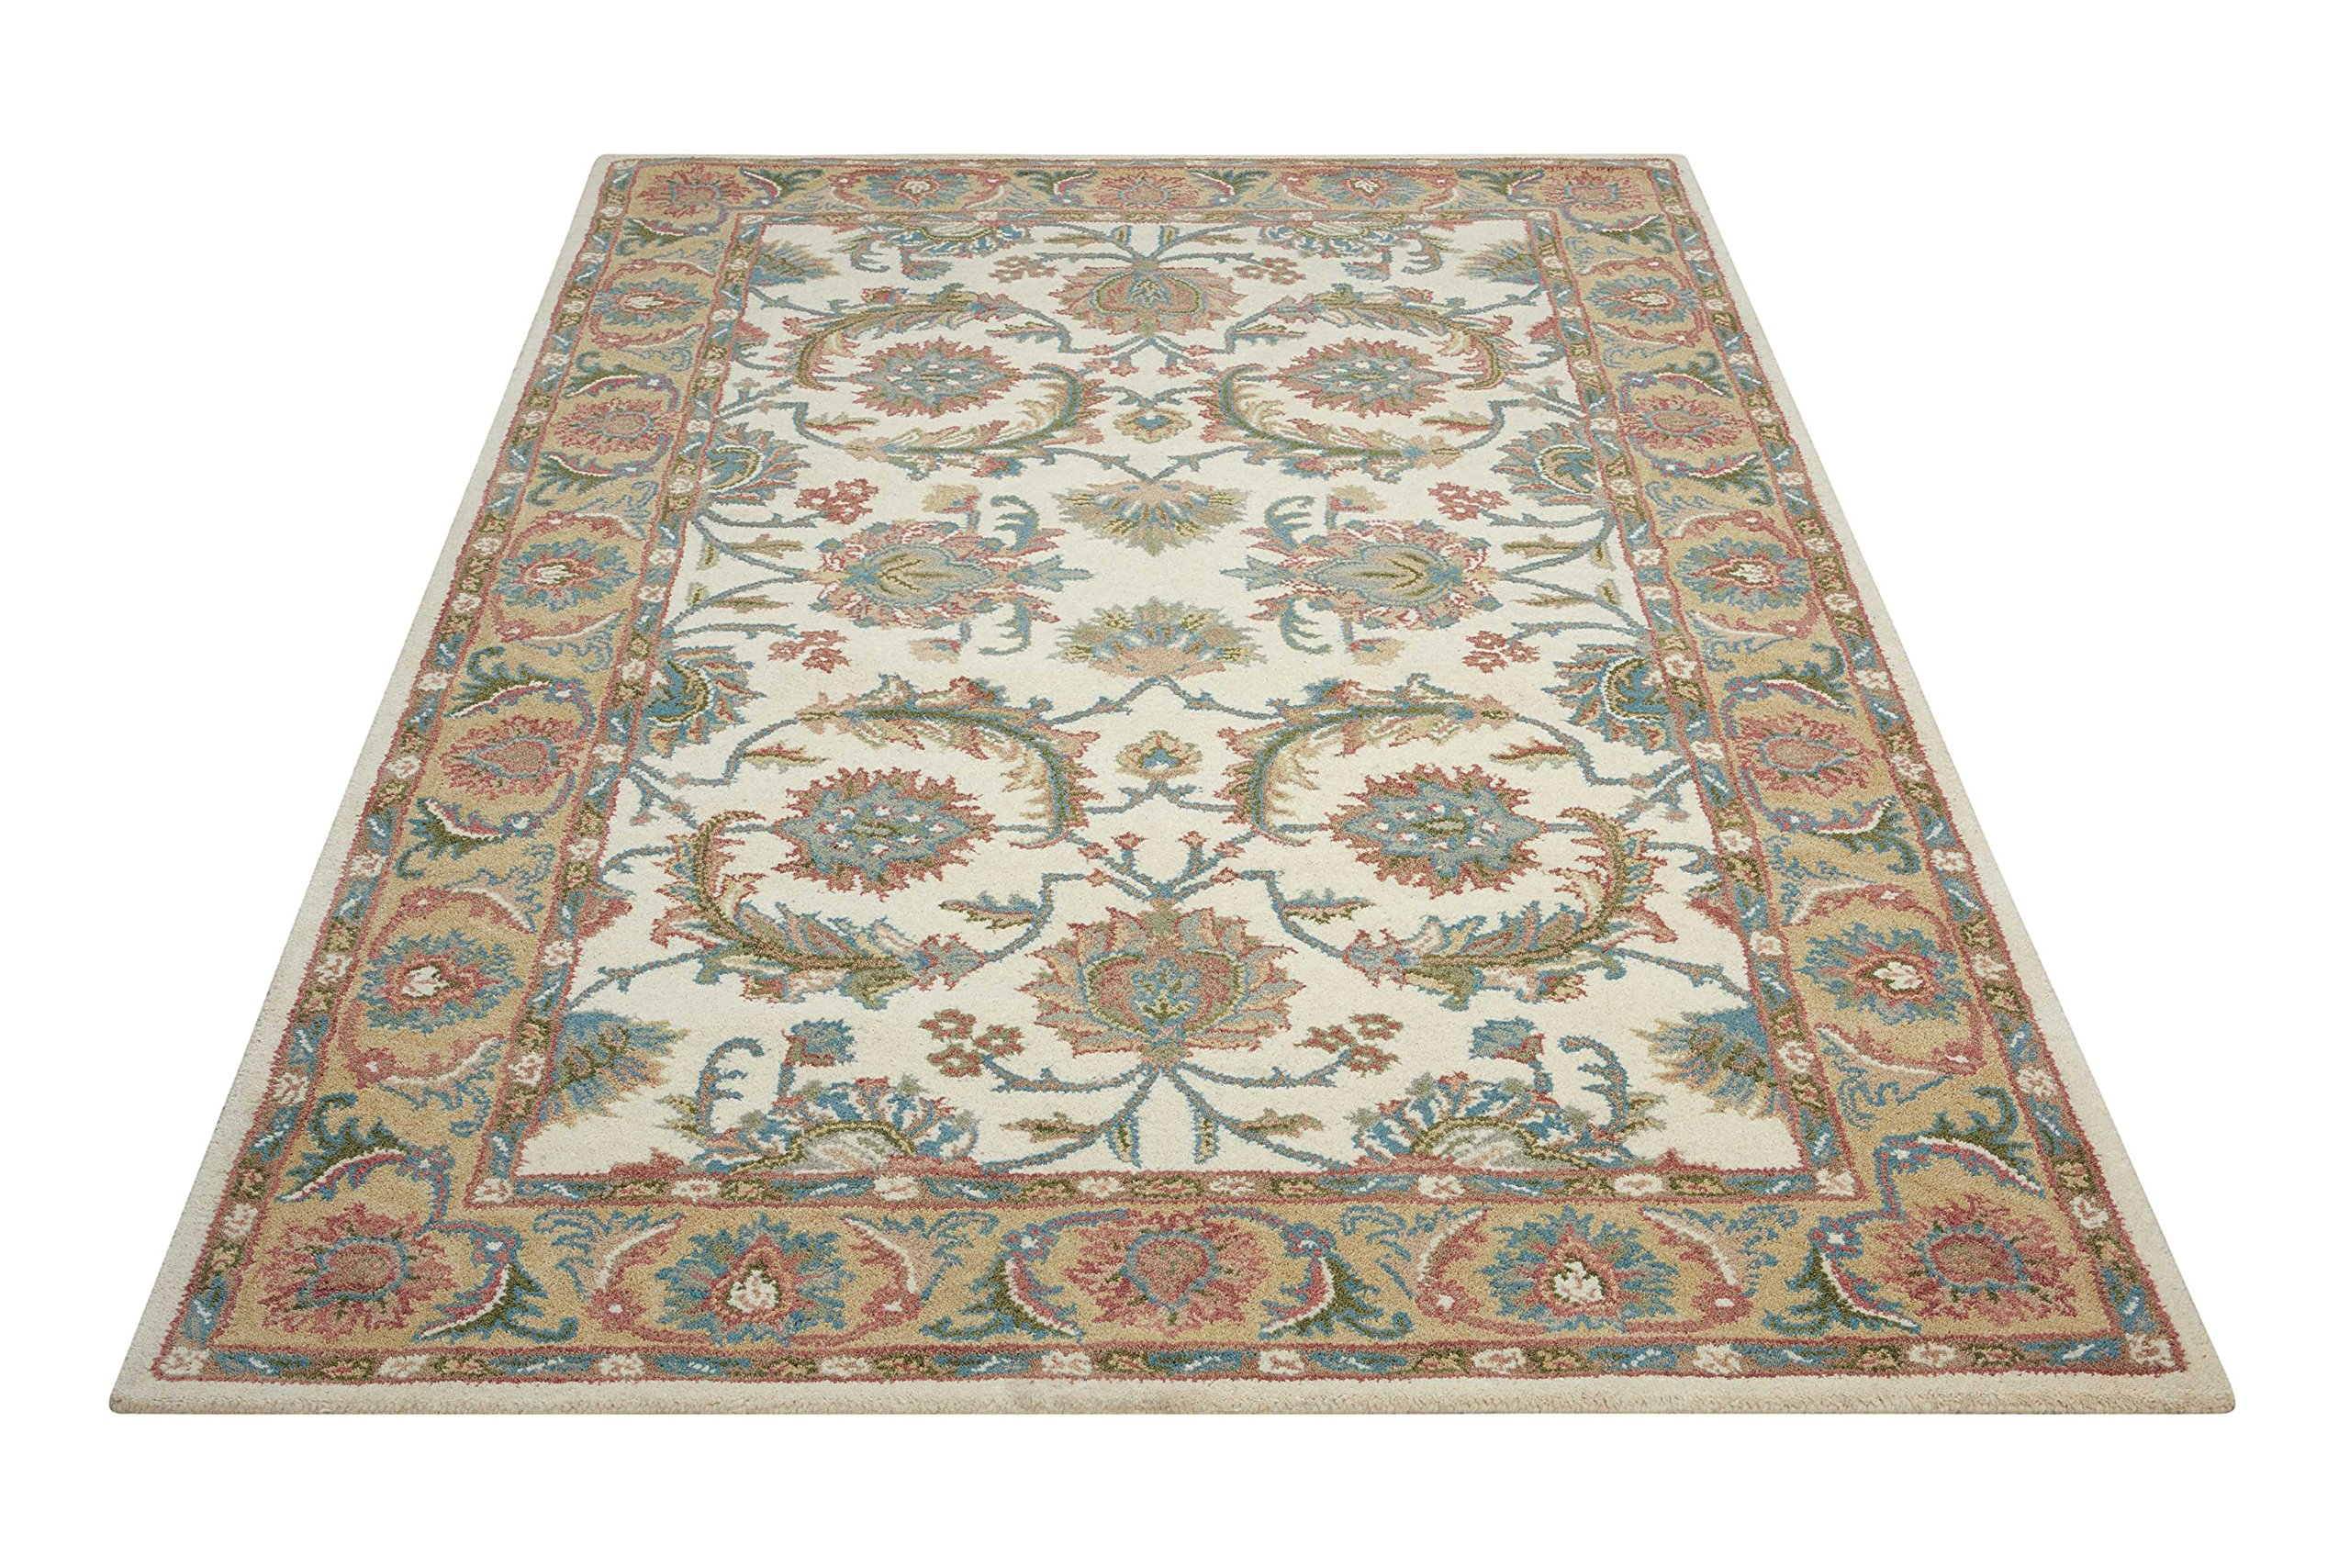 Nourison India House (IH05) Ivory/Gold Runner Area Rug, 2-Feet 3-Inches by 7-Feet 6-Inches (2'3'' x 7'6'') by Nourison (Image #3)